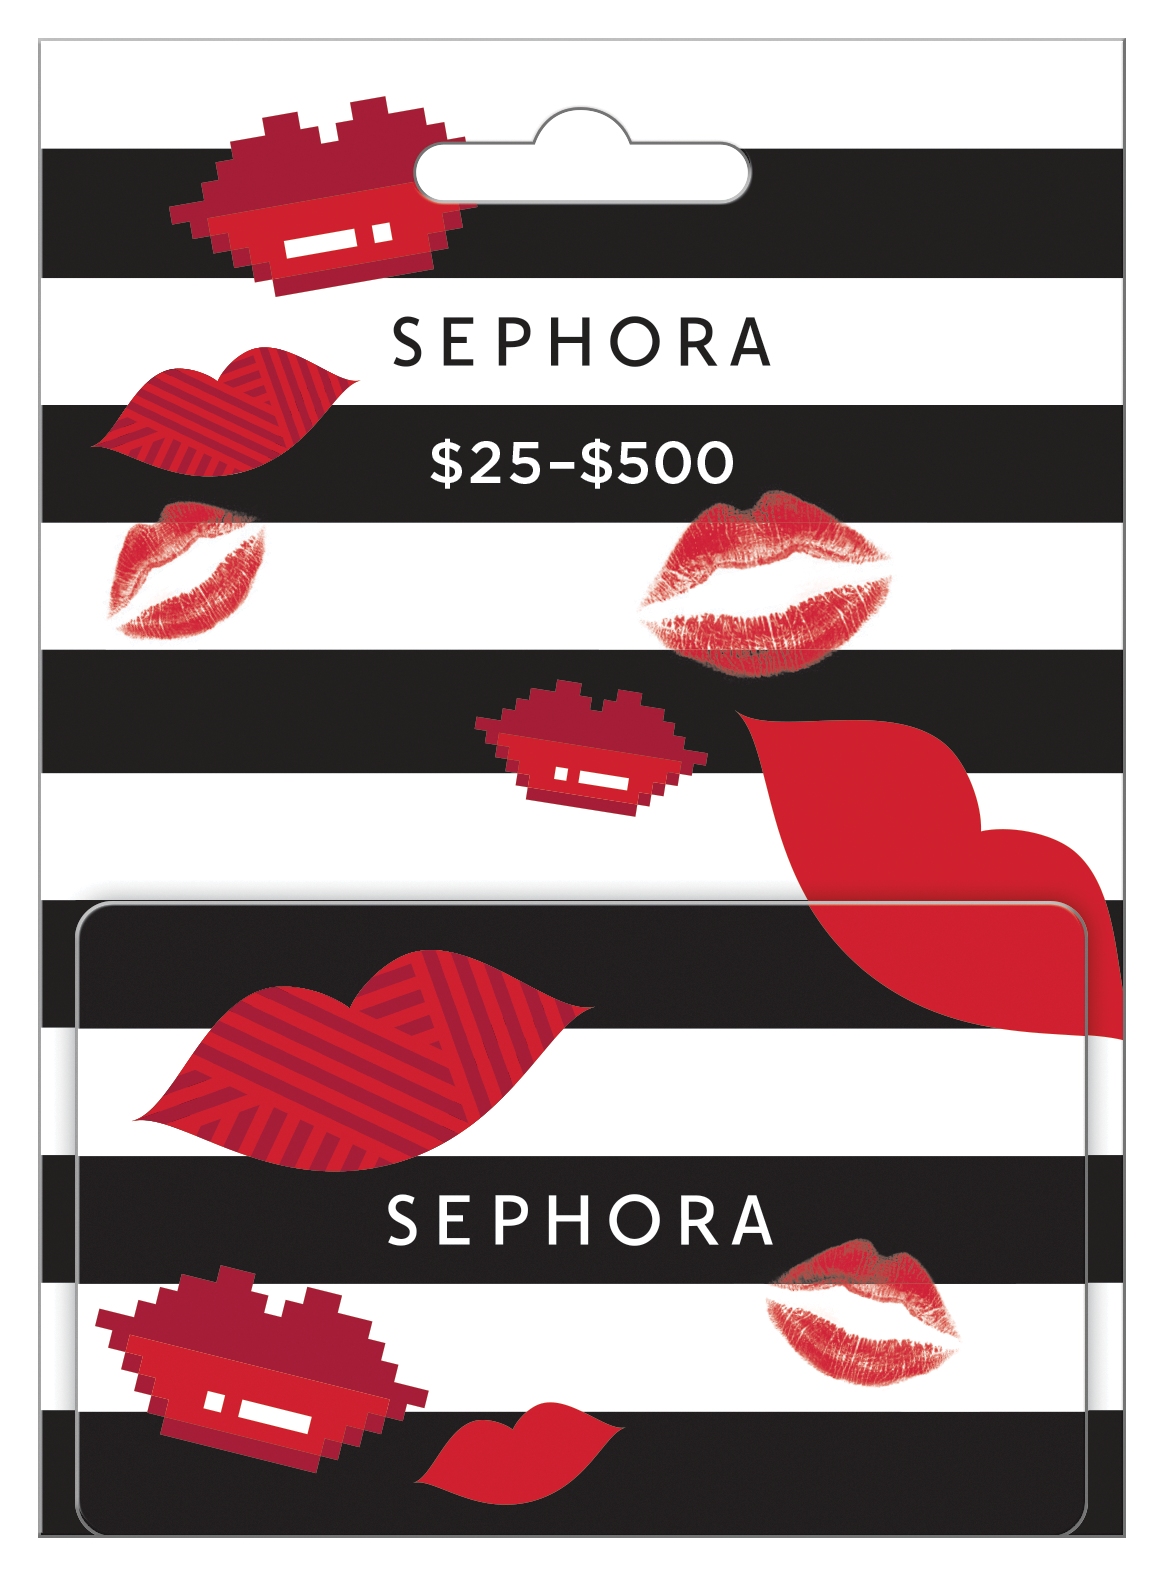 C3742_Sephora_Card_Carrier_VGC_25_500_090116.png